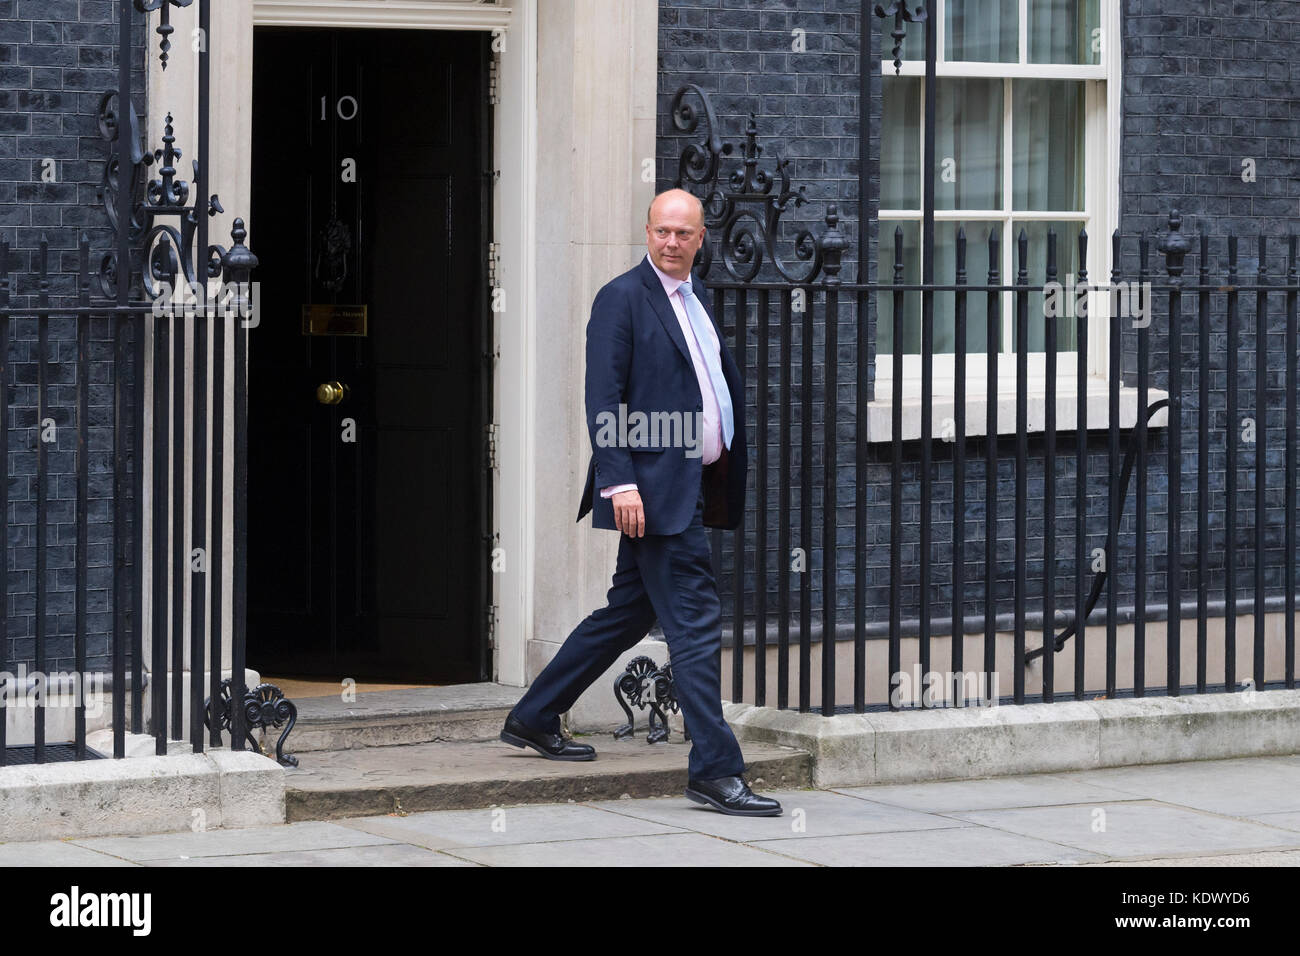 Chris Grayling MP, Secretary of State for Transport leaving a 2.5 hour cabinet meeting at 10 Downing Street, London, - Stock Image